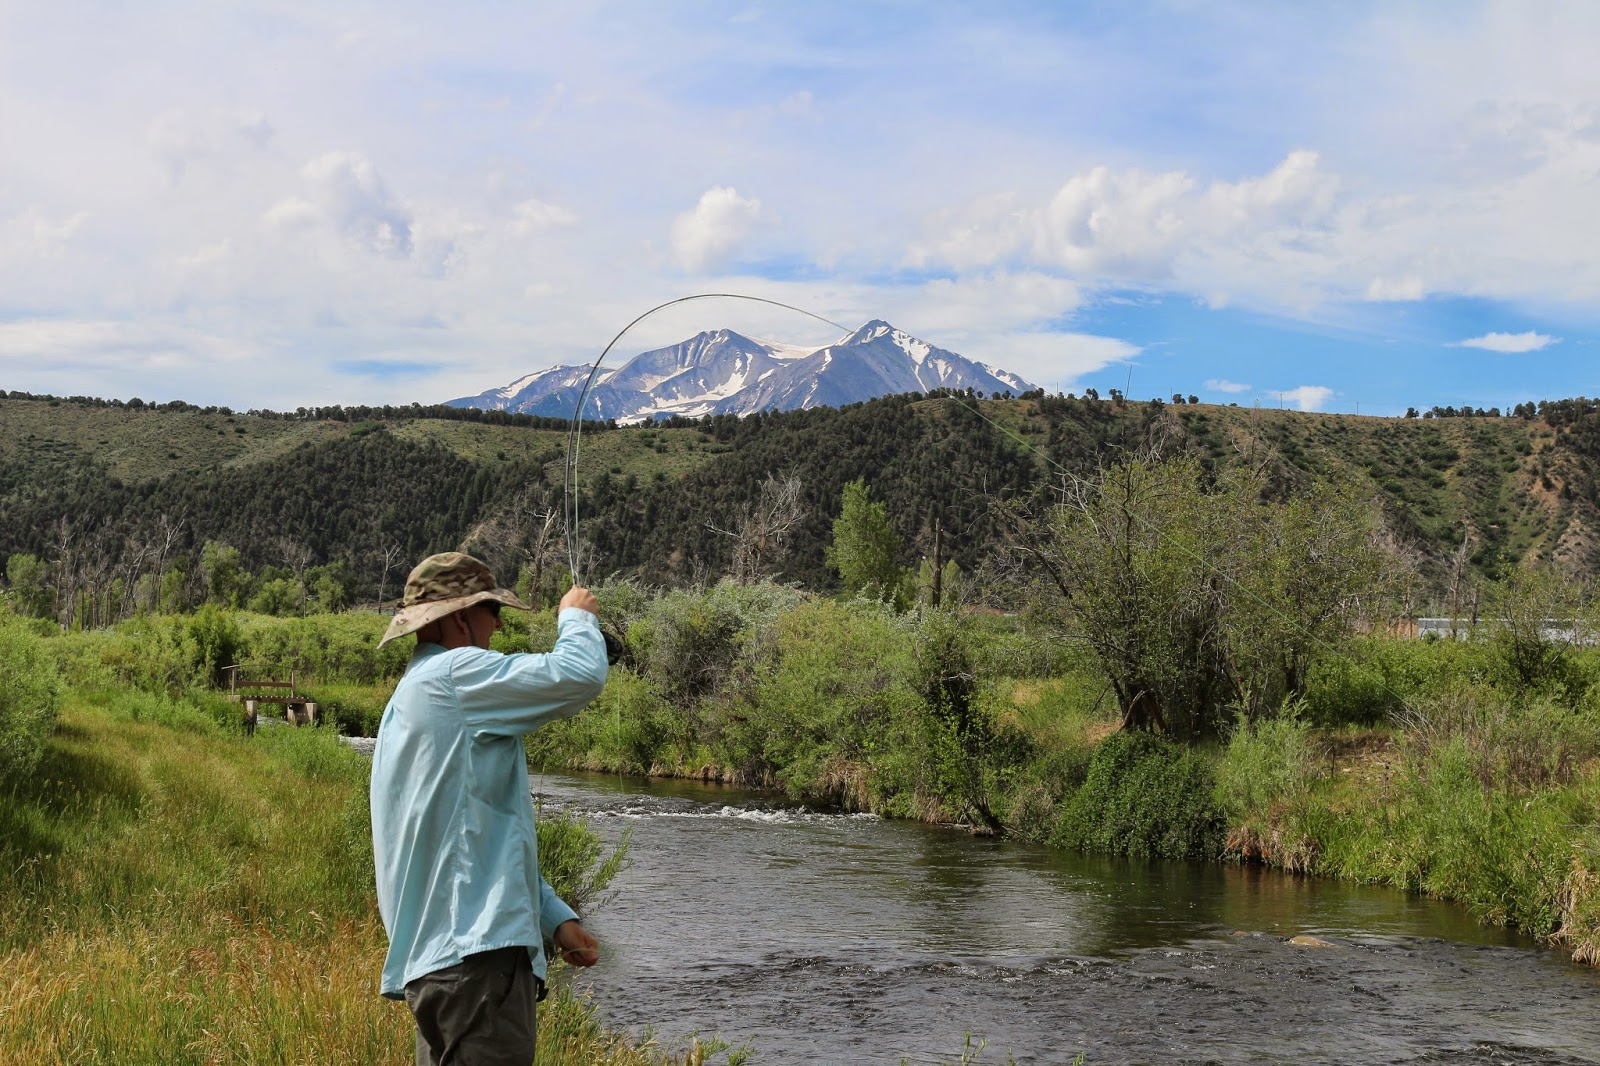 Fly+fish+the+Roaring+Fork+River+in+Colorado+with+Jay+Scott+Outdoors+7.JPG